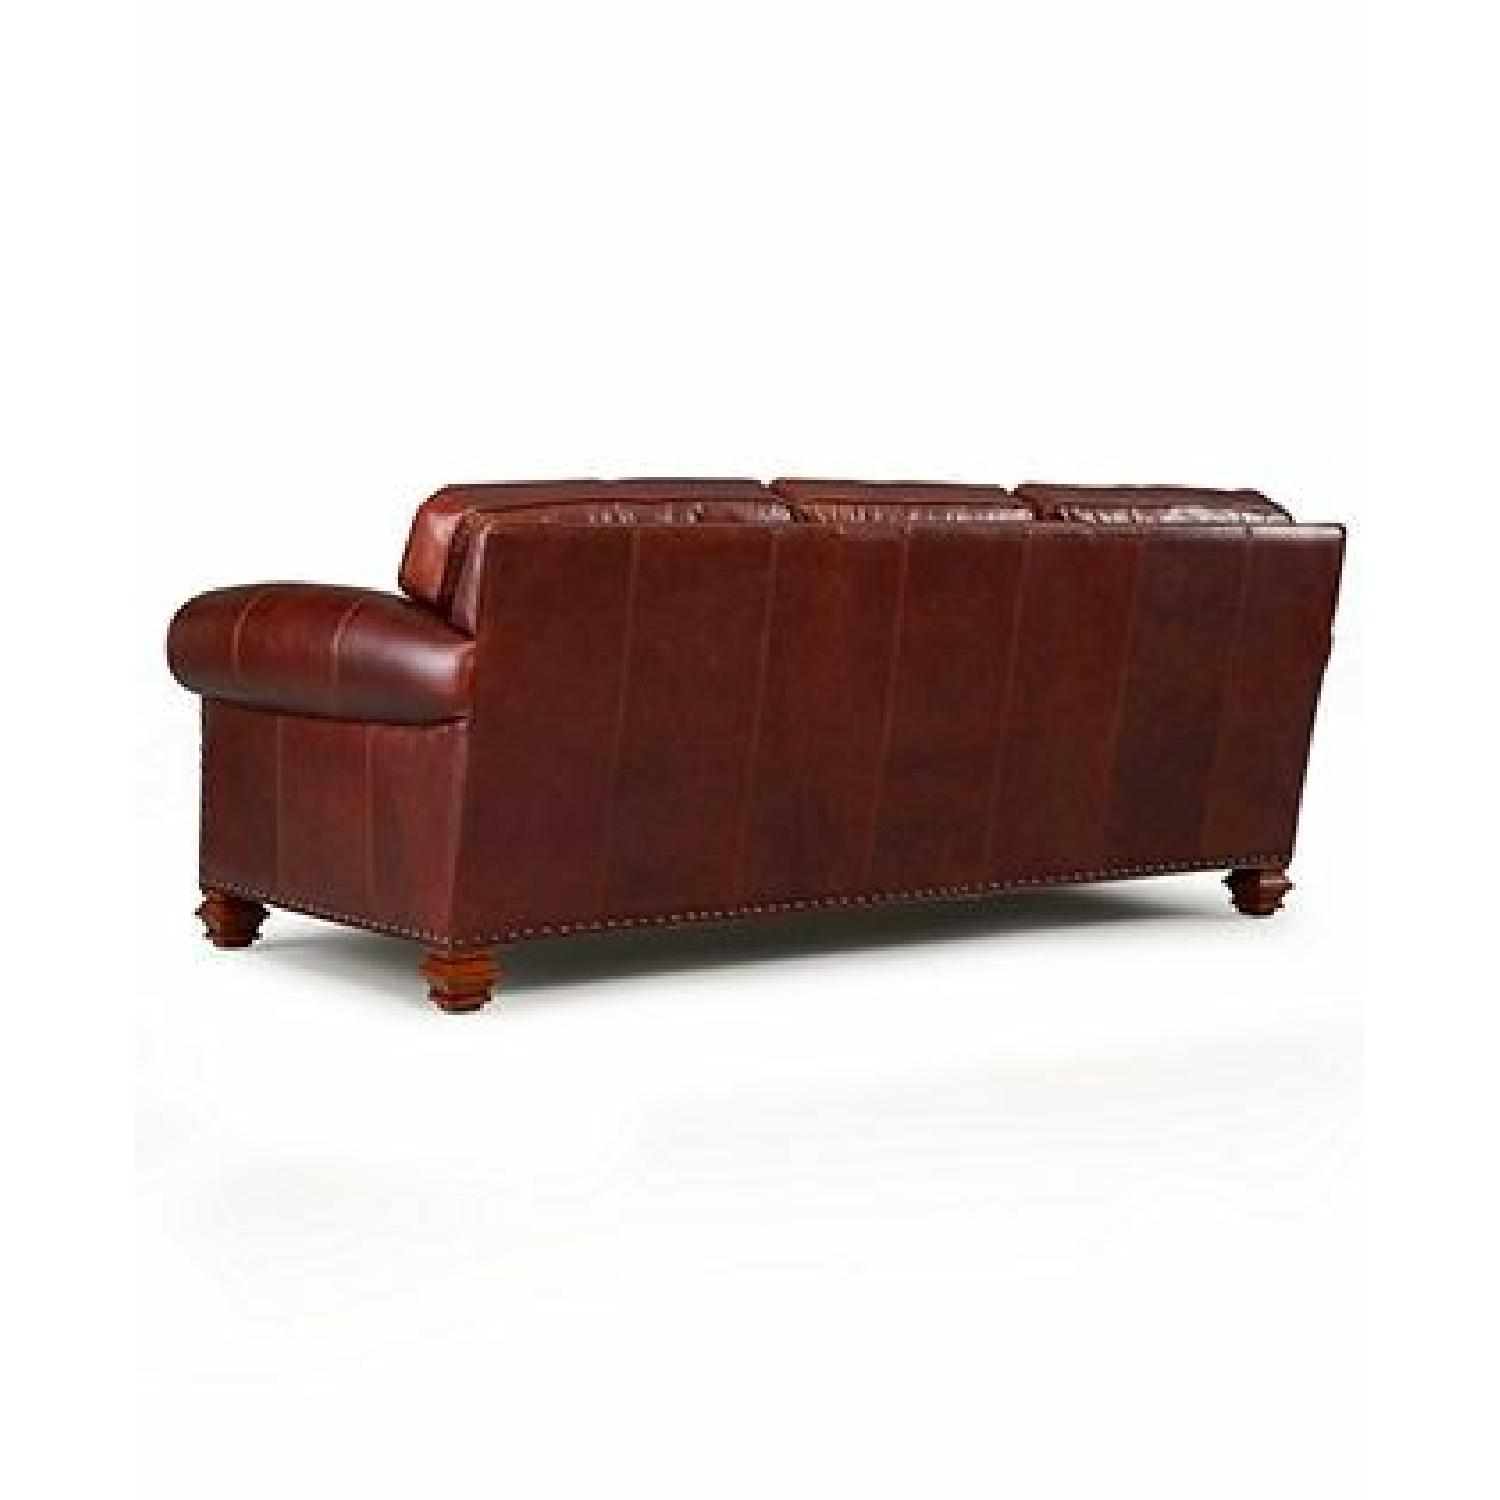 Macy's Ralph Lauren Stanmore Leather Sofa - image-2